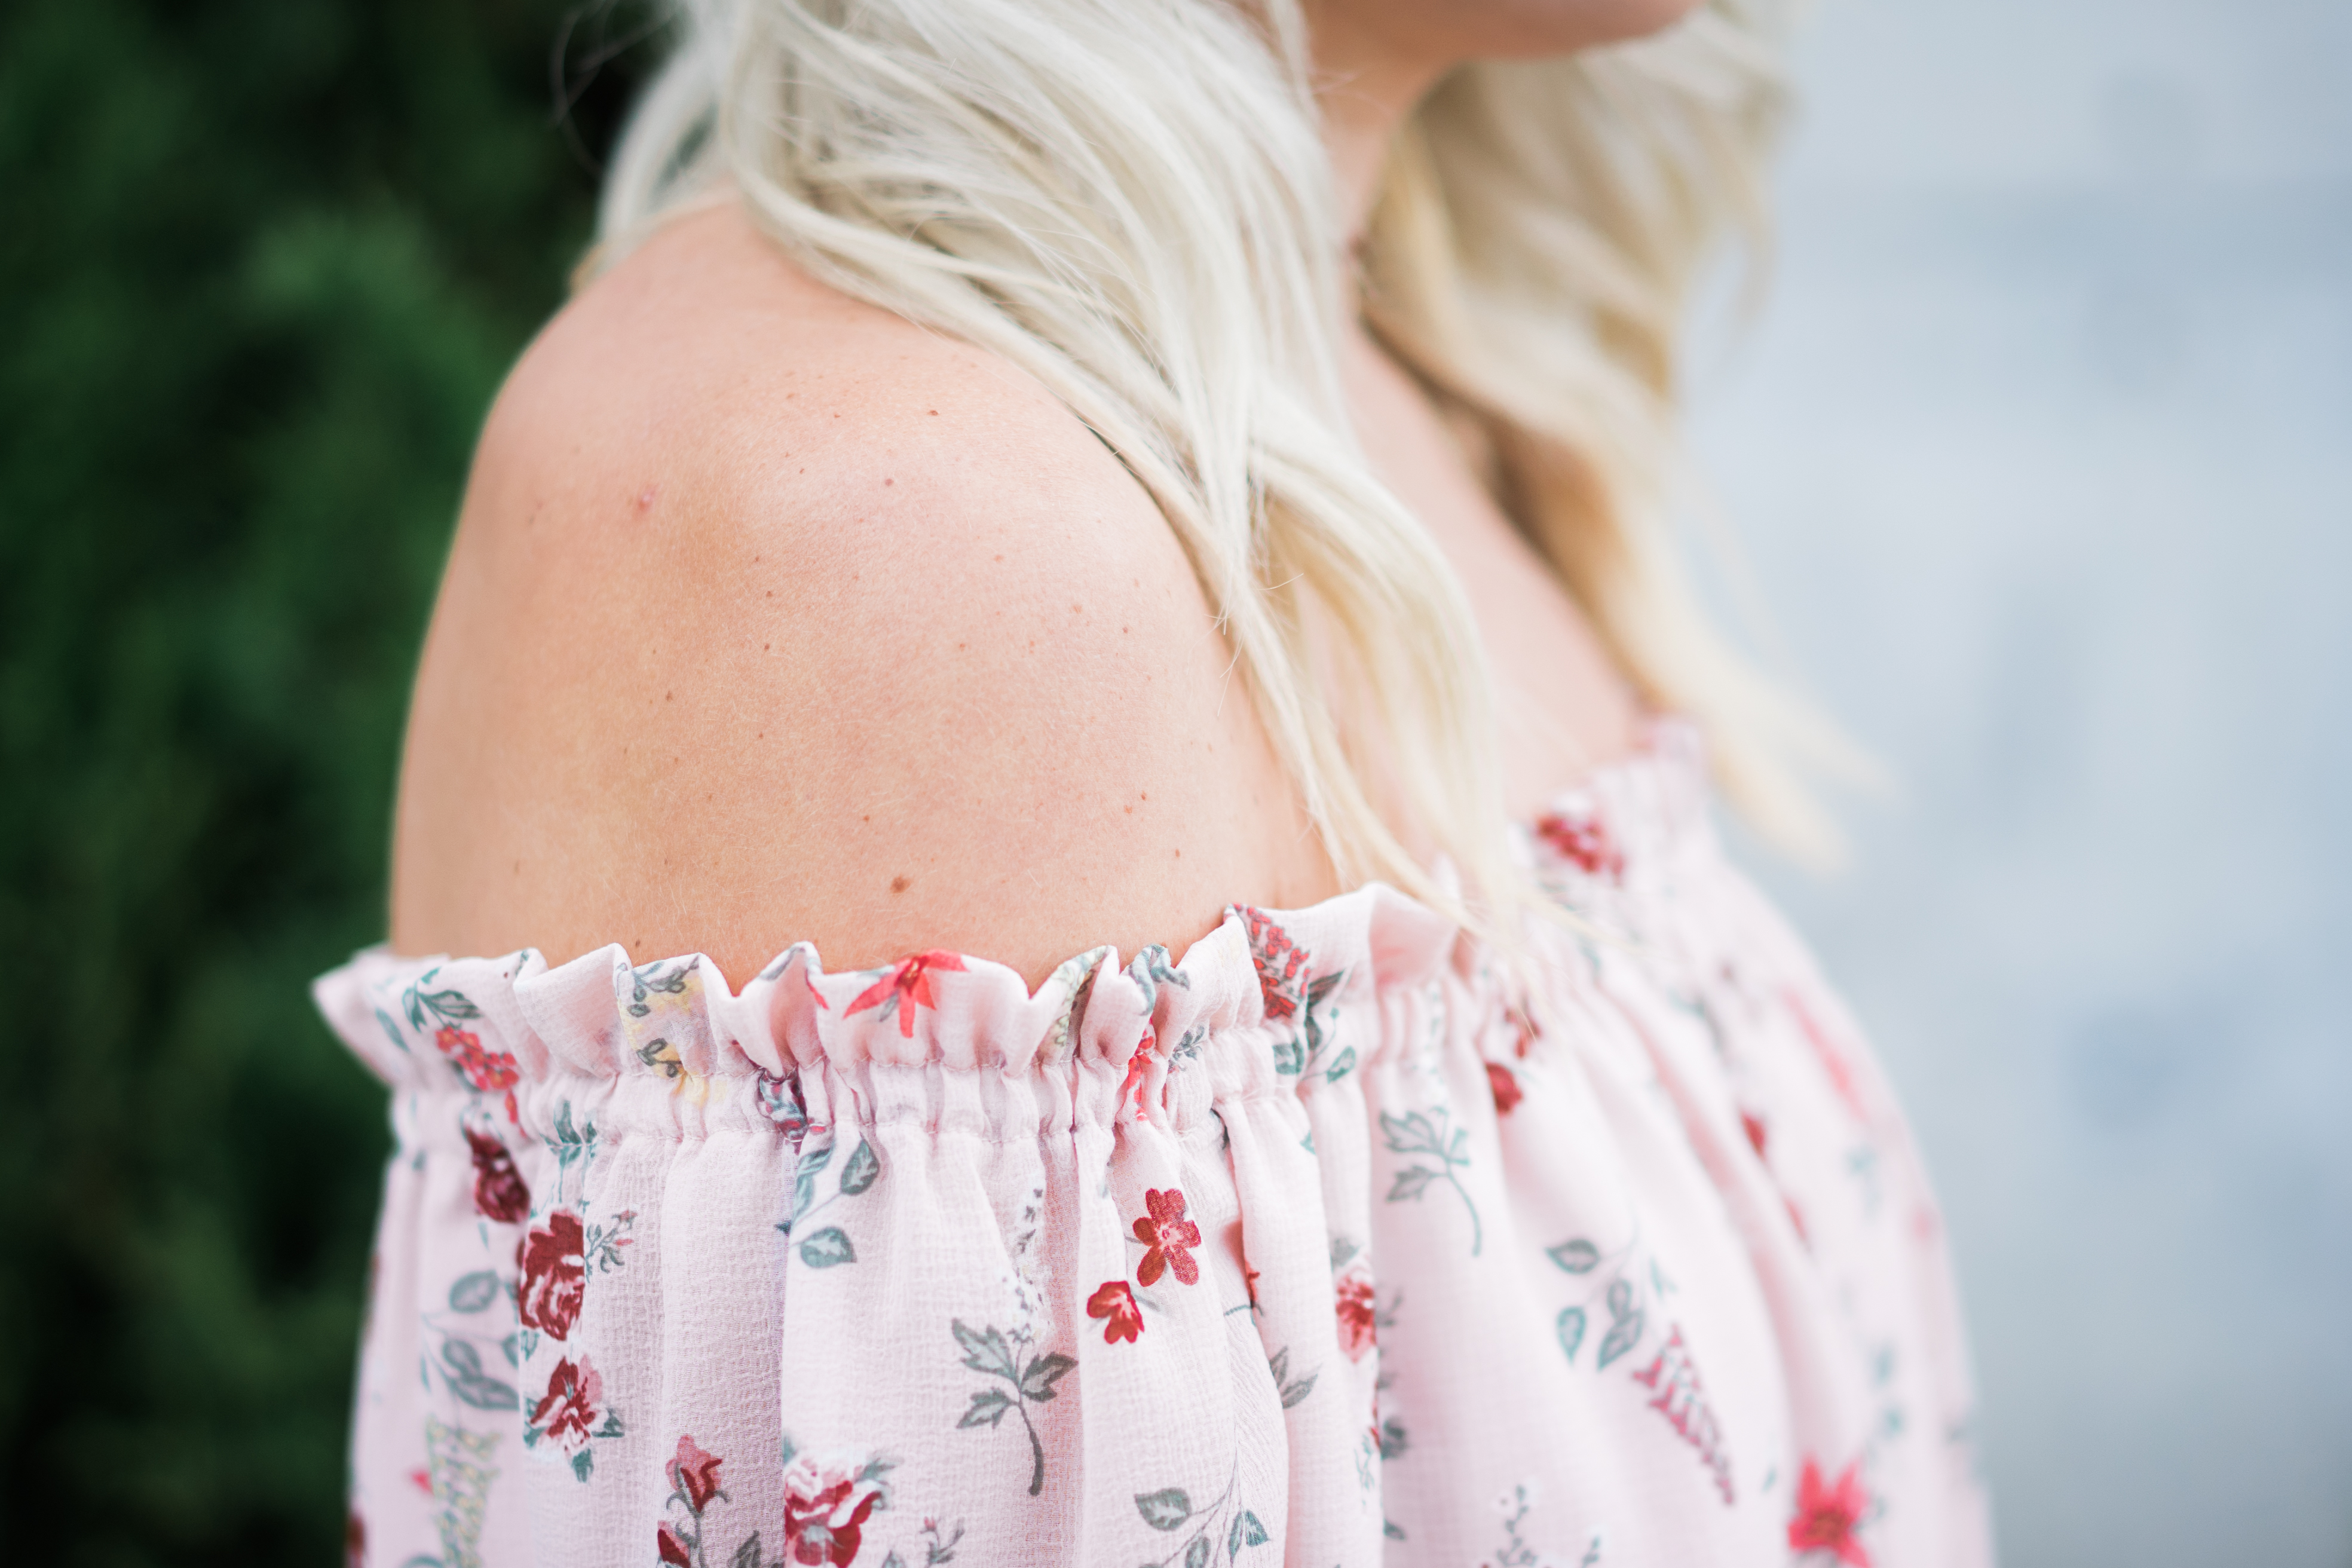 Blush florals are perfect for spring or summer. Feminine, dainty, and perfect for those warm summer days and nights.